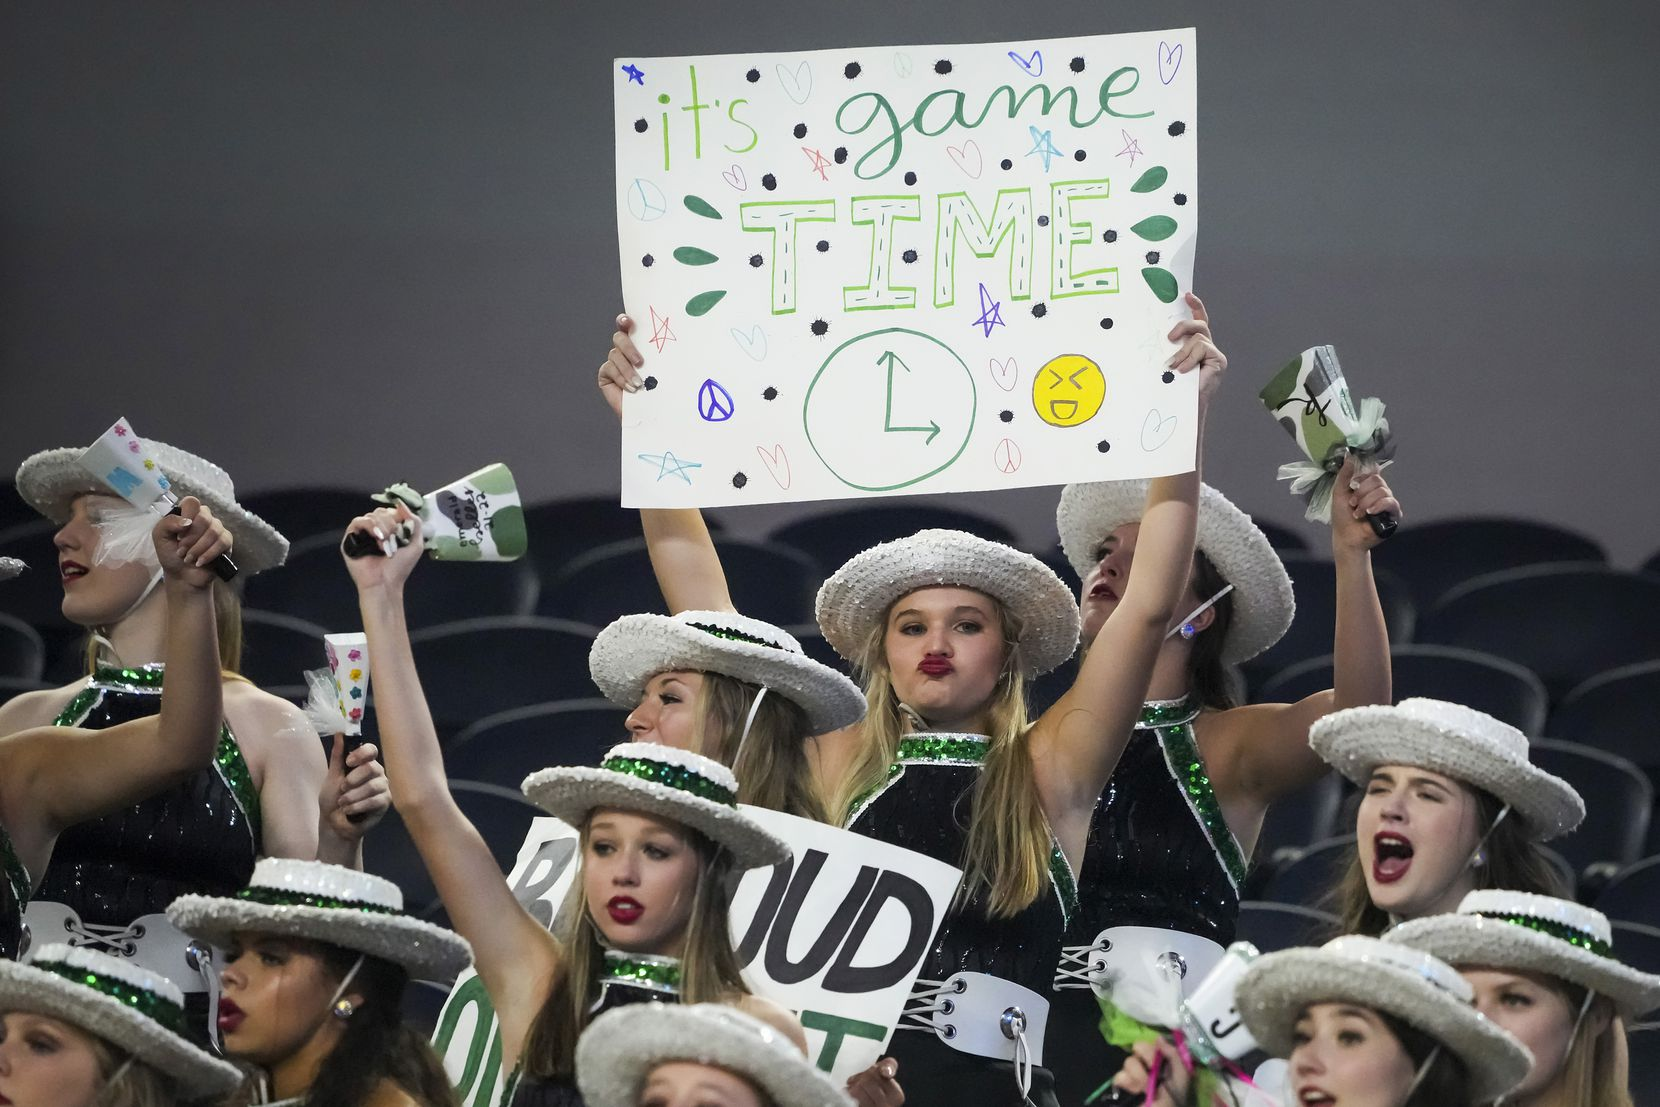 Members of the Southlake Carroll Emerald Belles Drill Team cheer their team during the second half of a high school football game against Highland Park at AT&T Stadium on Thursday, Aug. 26, 2021, in Arlington.